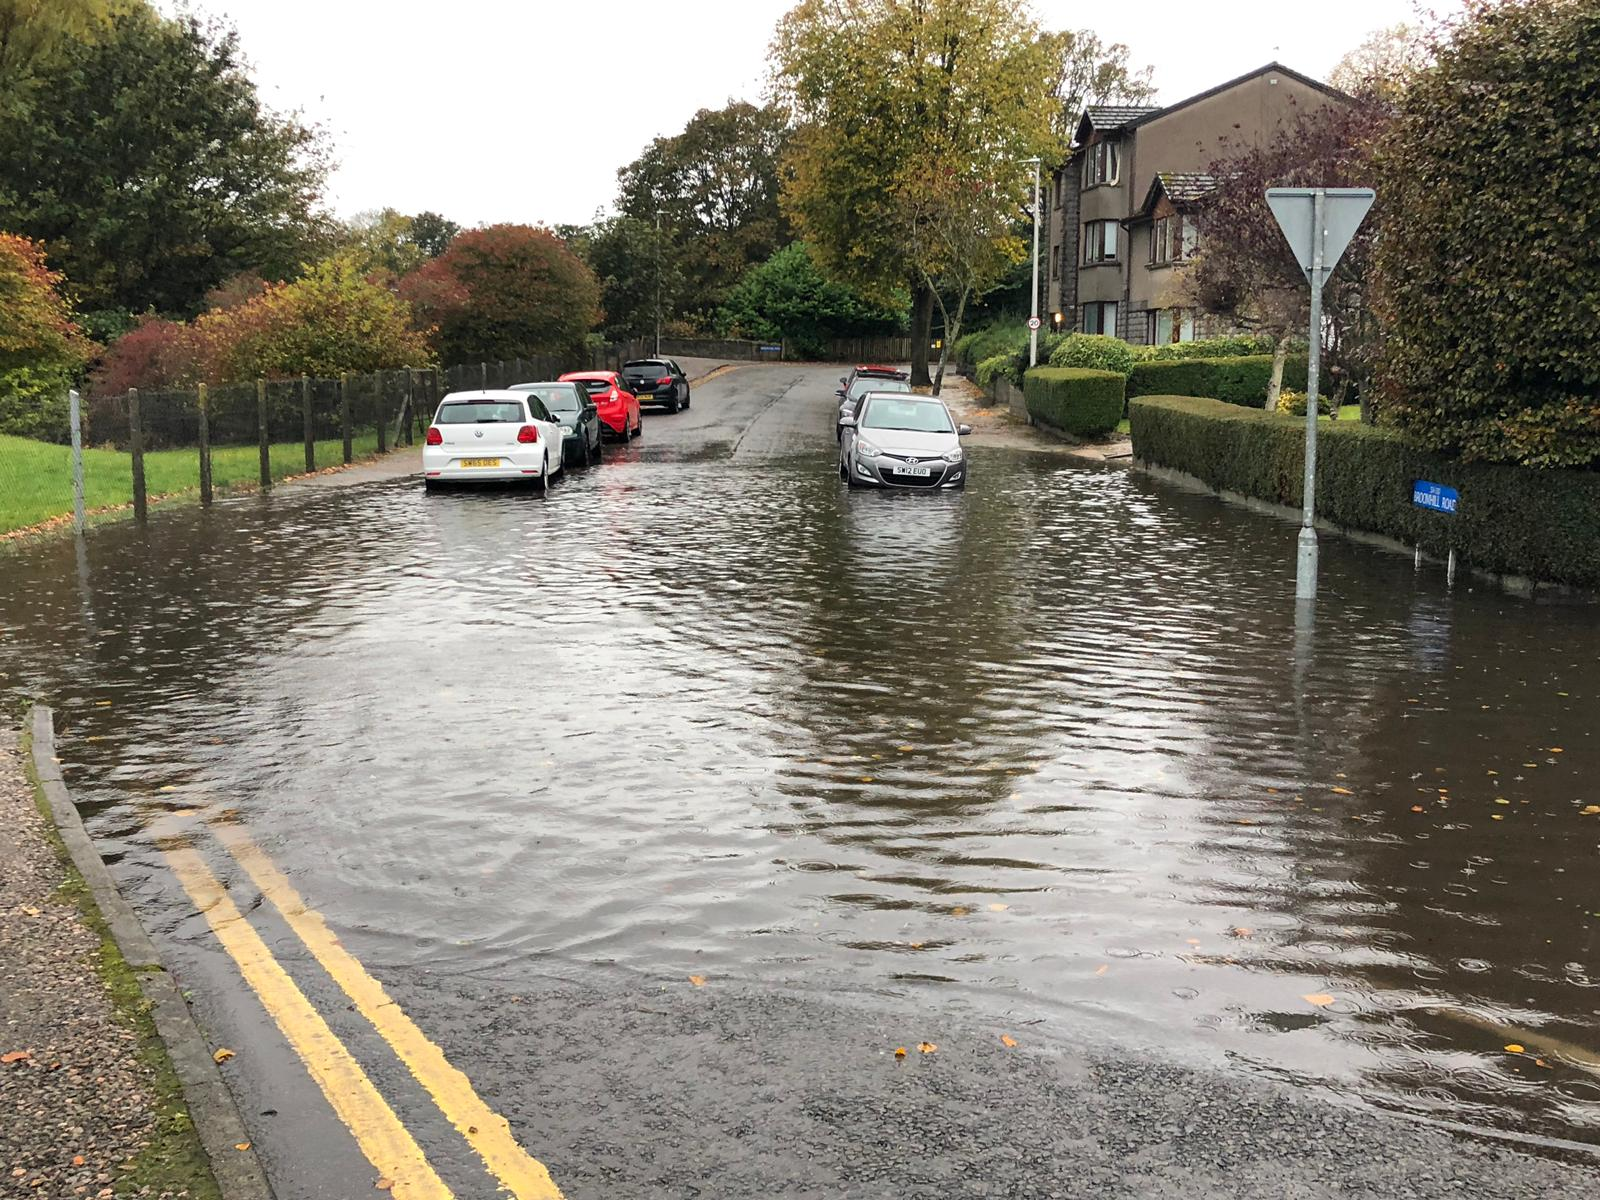 Broomhill Road in Aberdeen was badly flooded. Picture by Andy Skinner